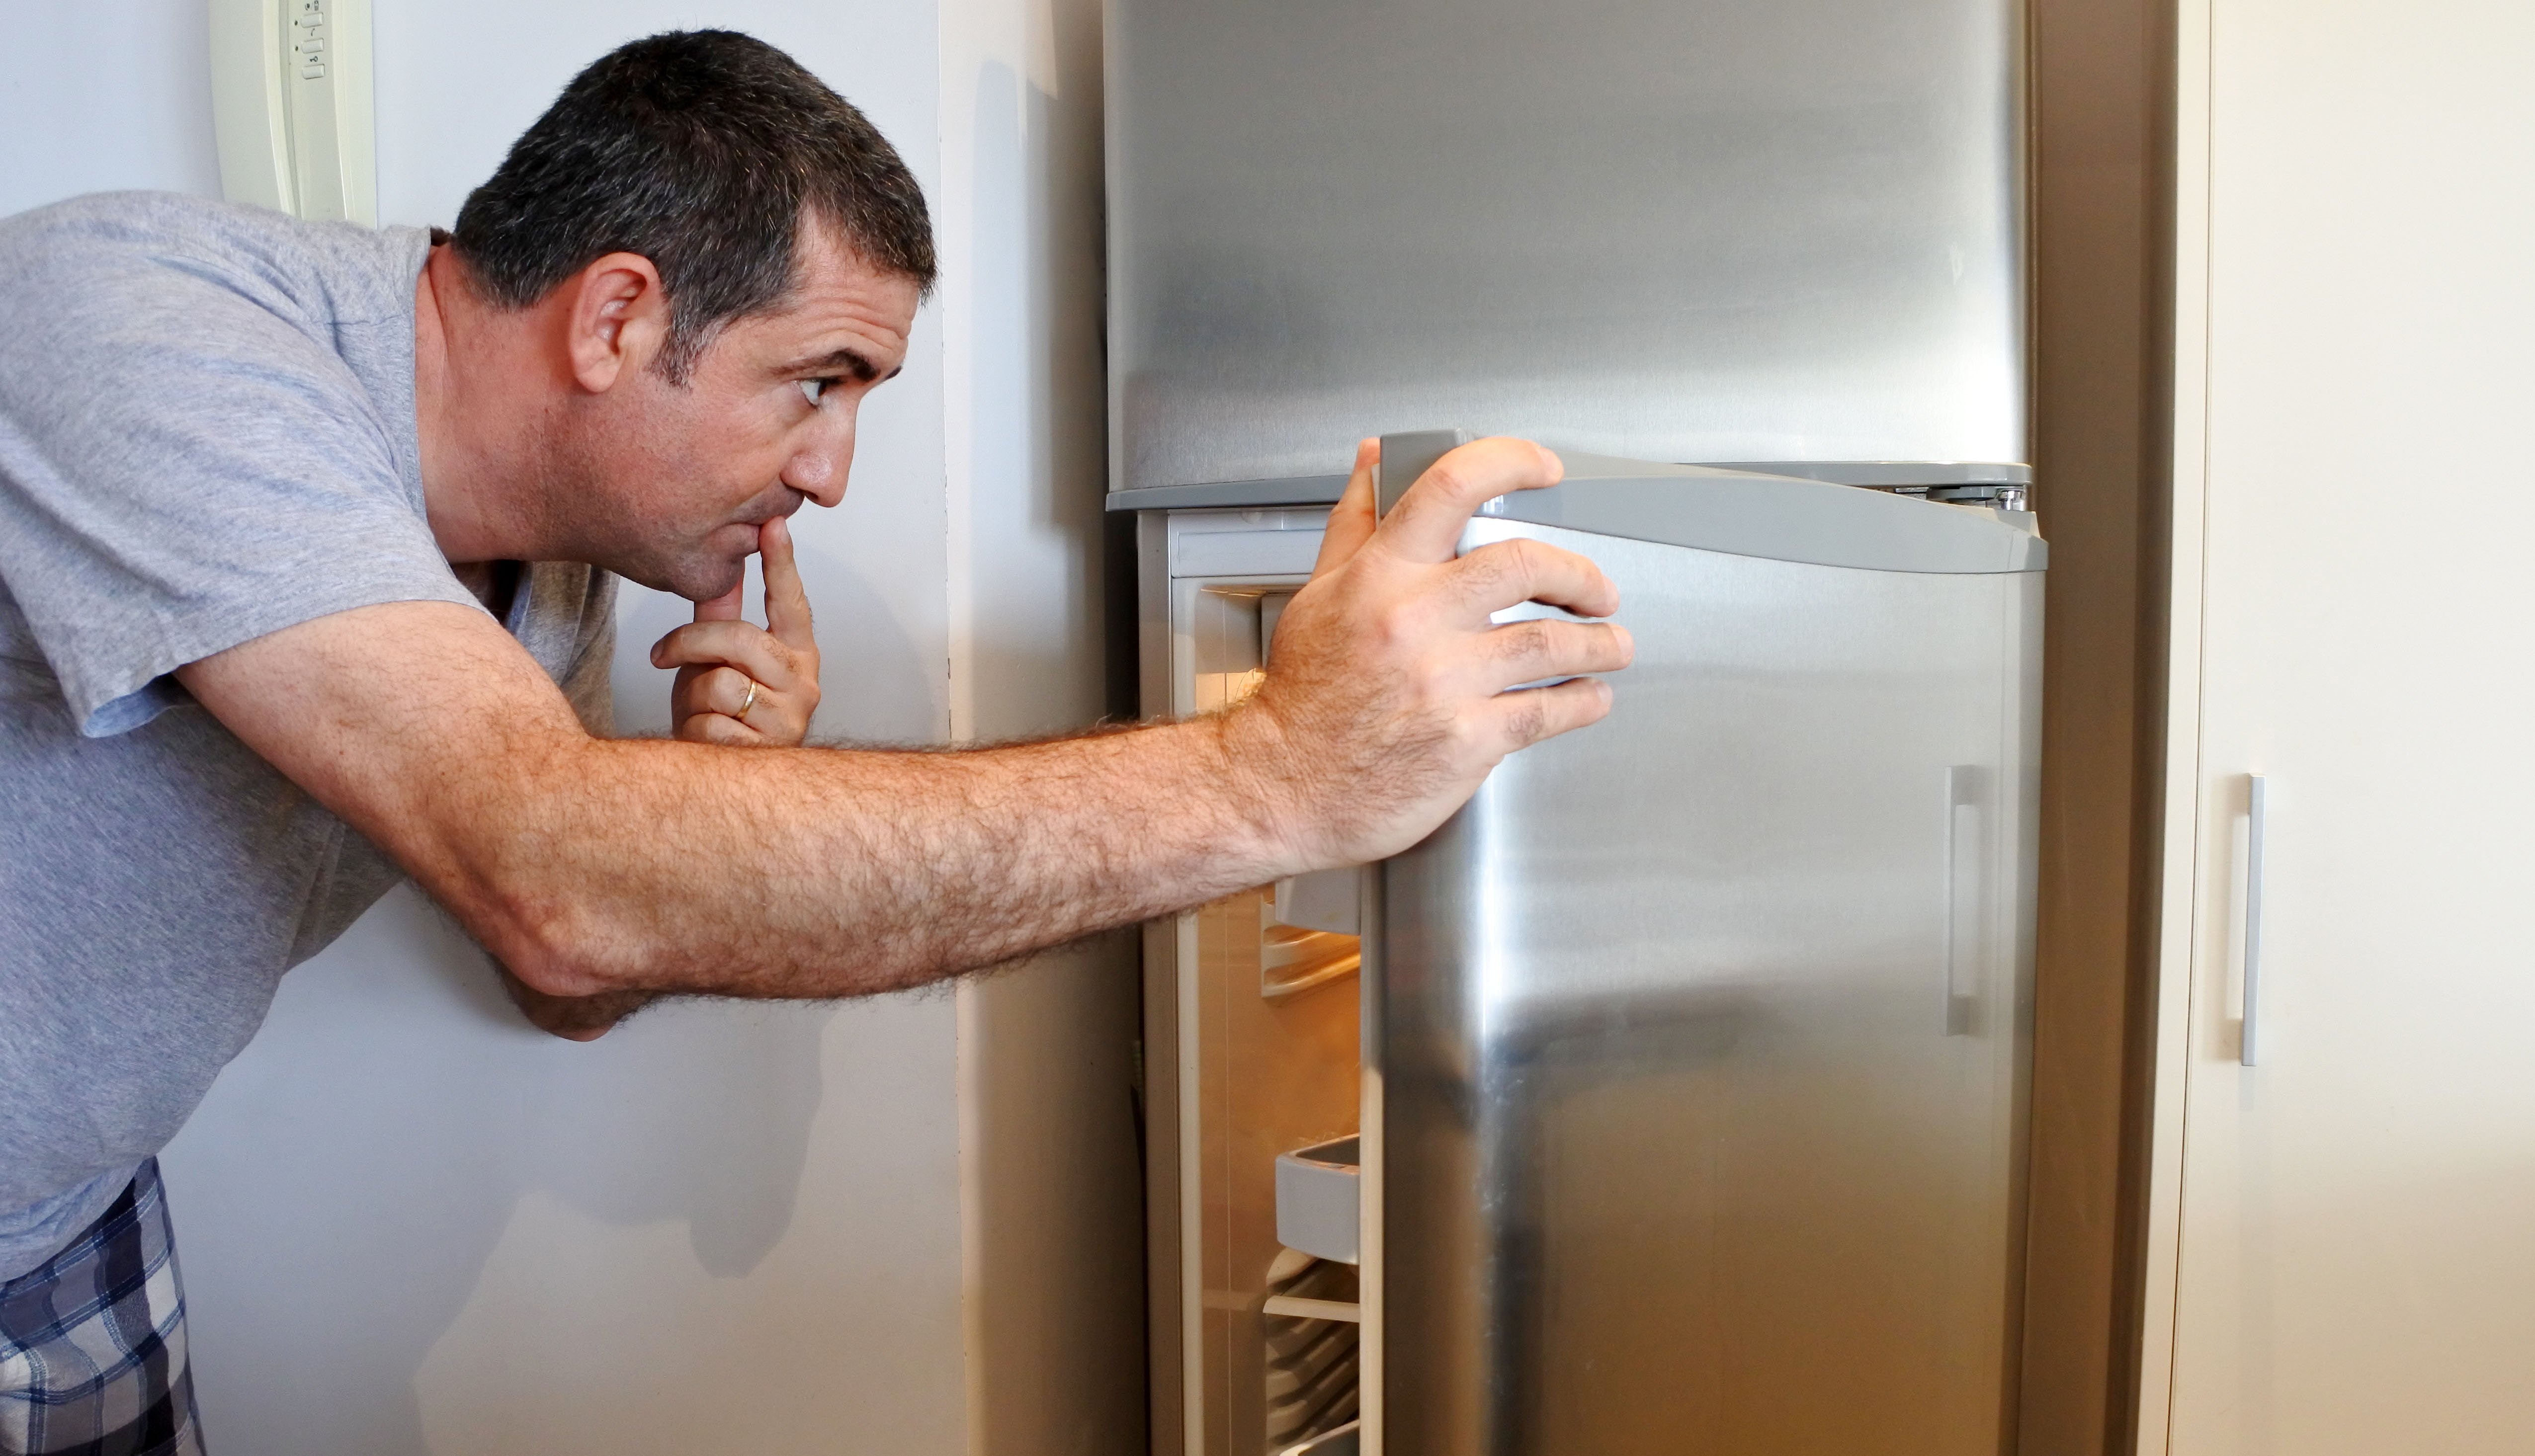 man wearing pjs looks in the fridge for something to eat